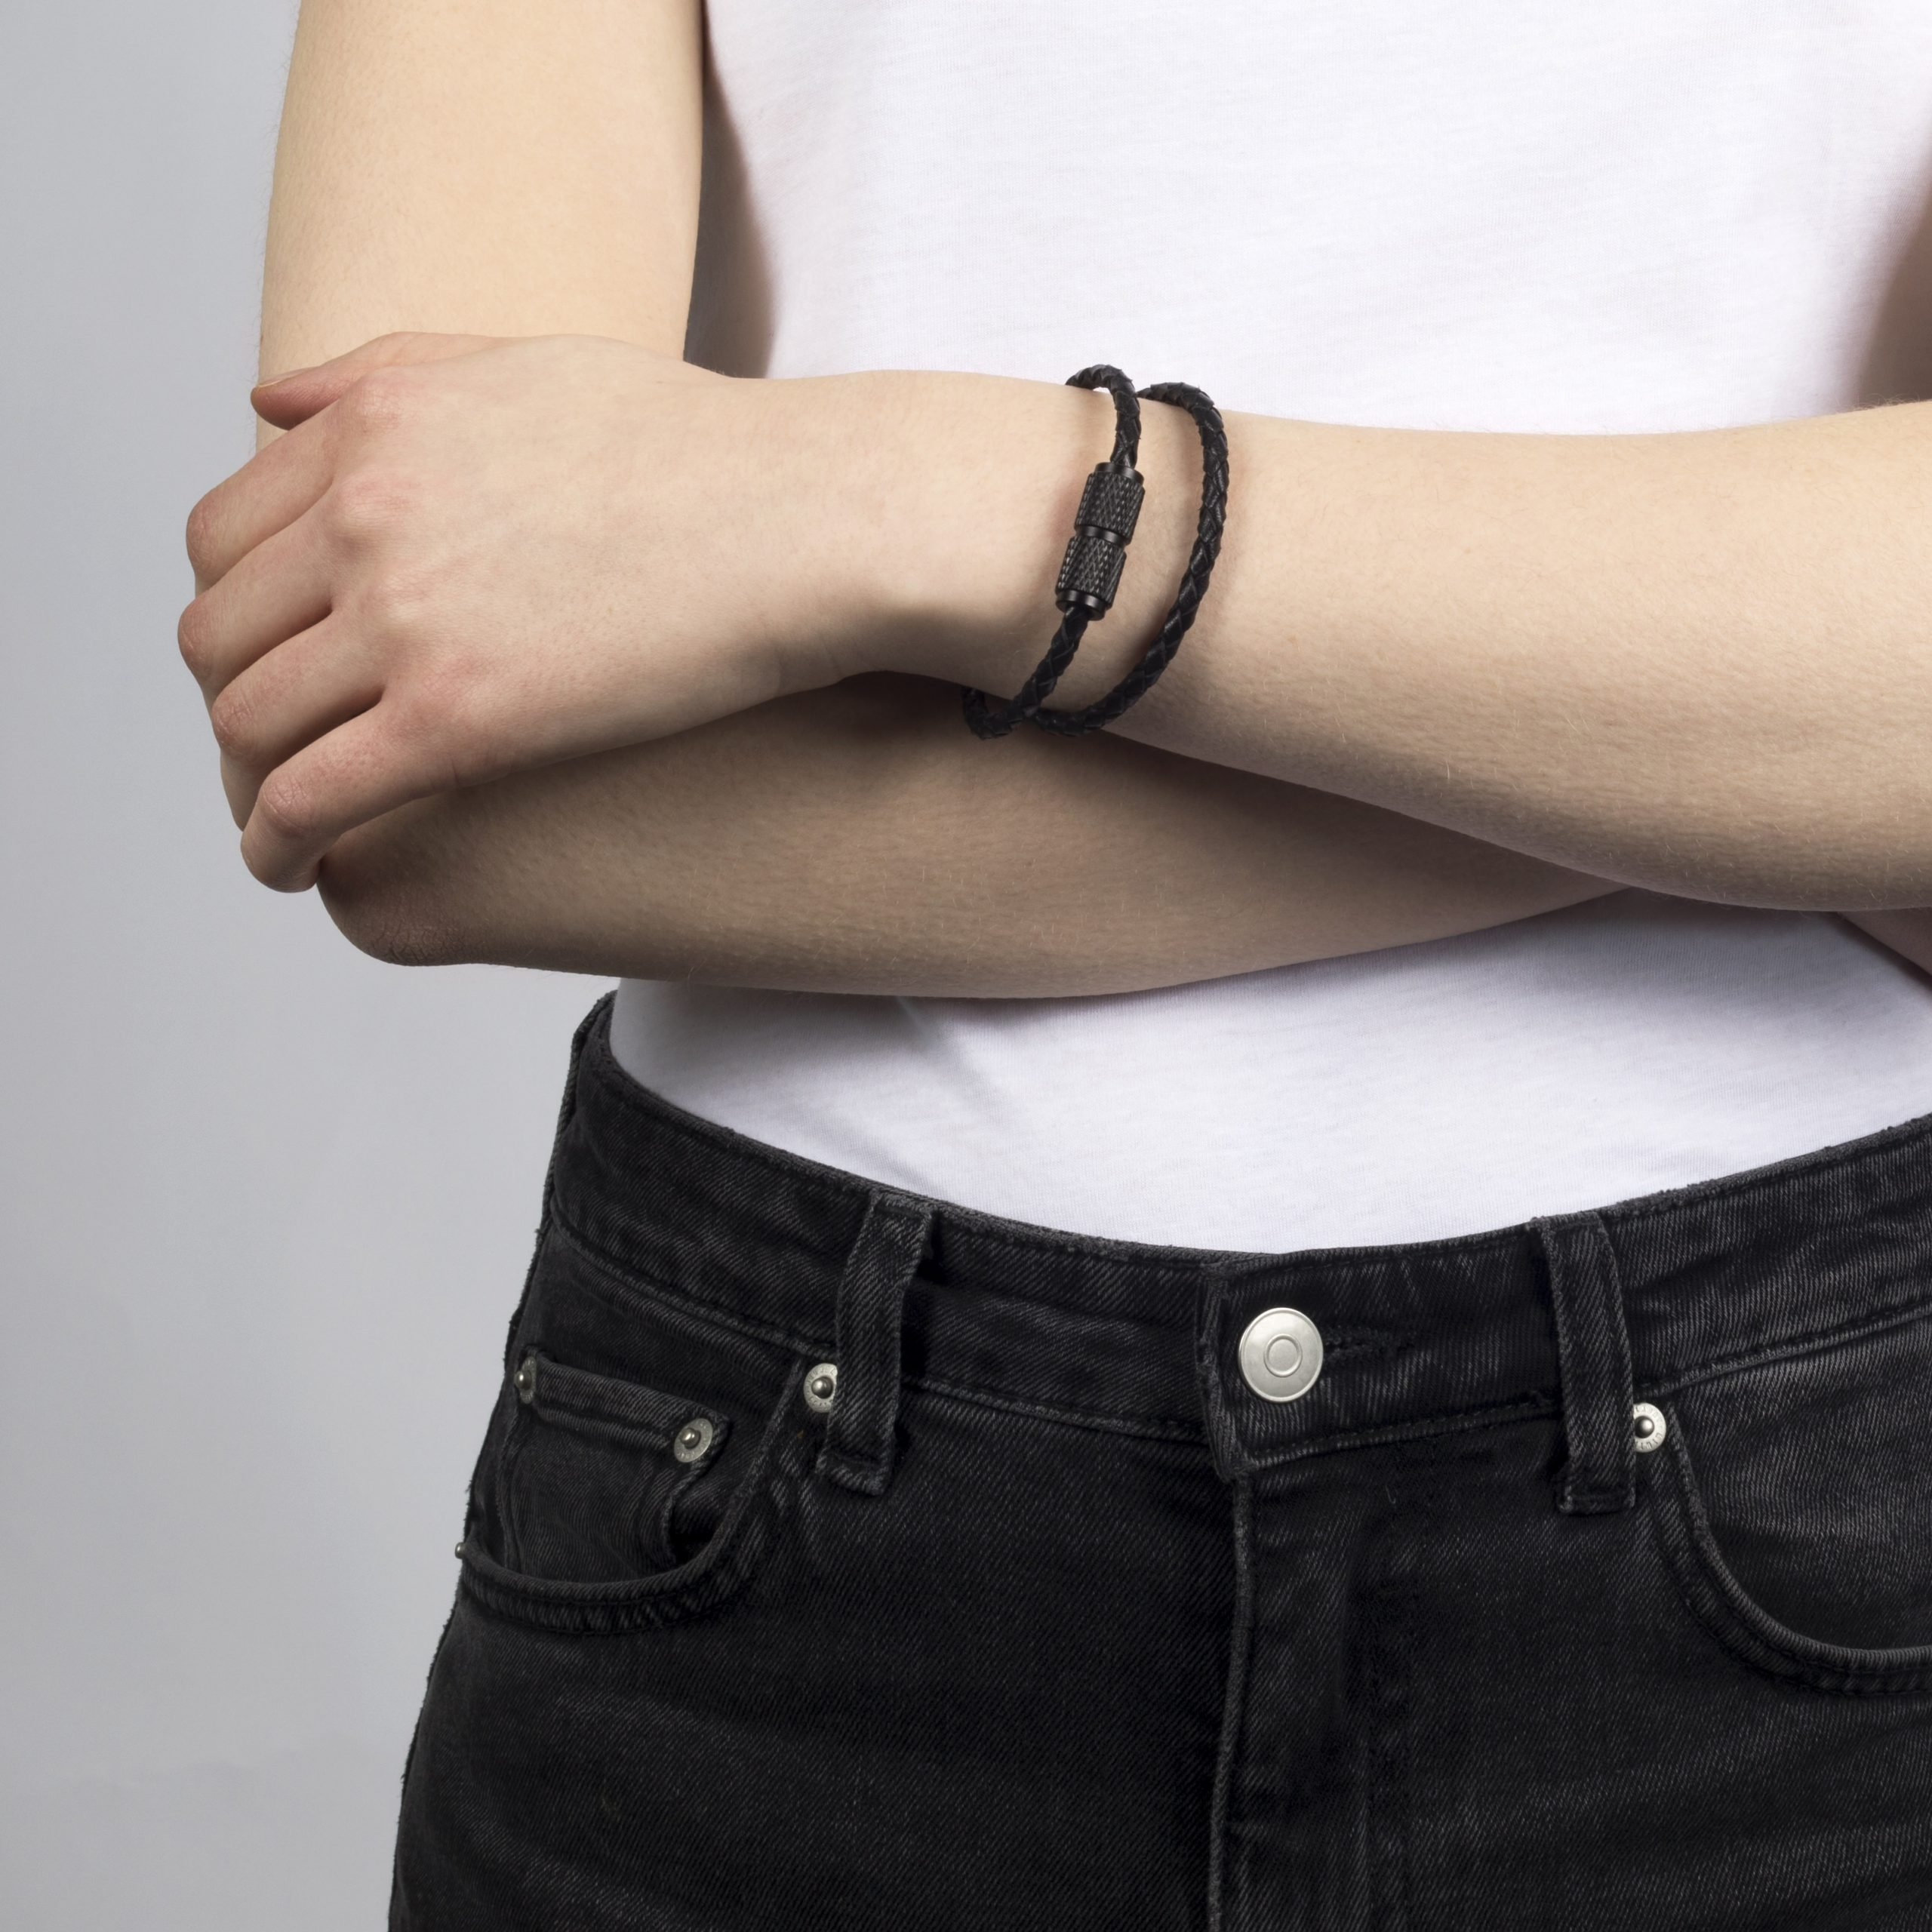 buster-_-punch-jewelry-double-bracelet-black-lifestyle_1_1.jpg